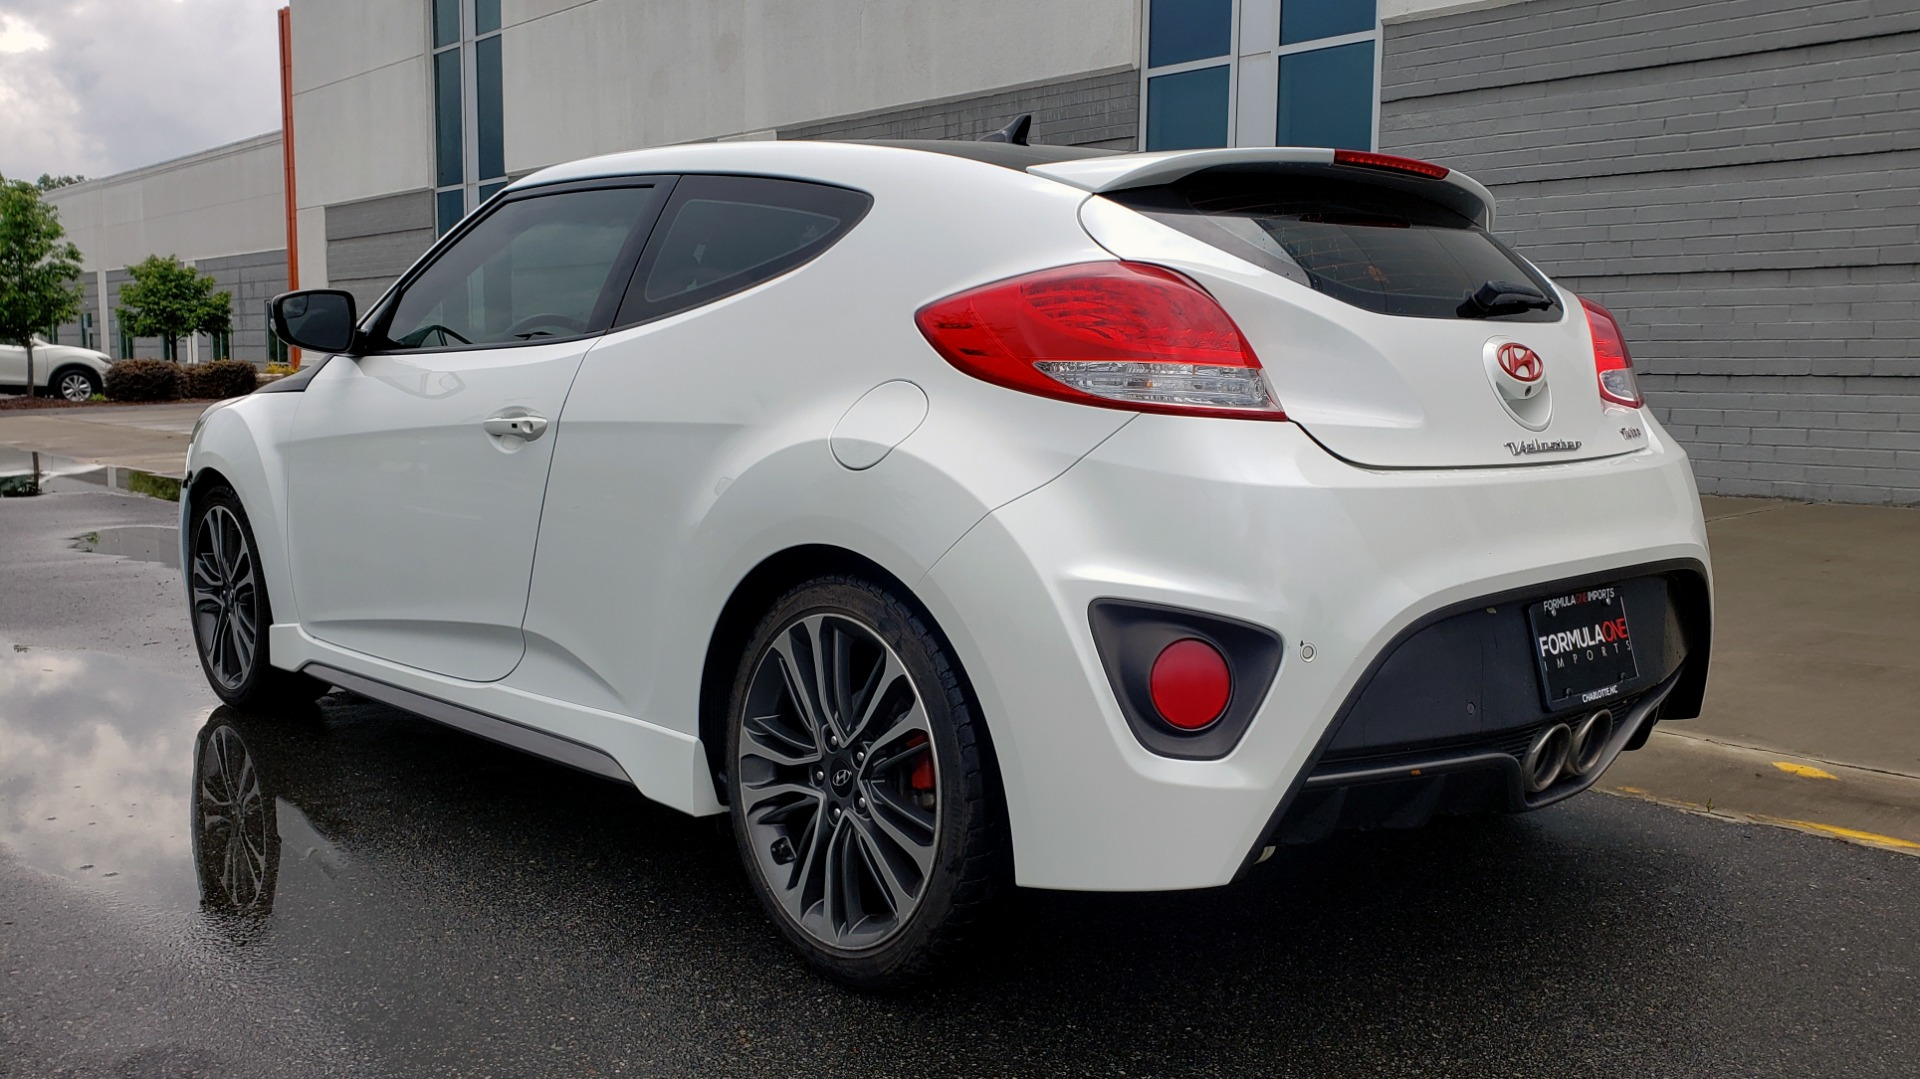 Used 2016 Hyundai VELOSTER 1.6L TURBO / 7-SPD ATUO / 3DR COUPE / NAV / PANO-ROOF for sale Sold at Formula Imports in Charlotte NC 28227 6